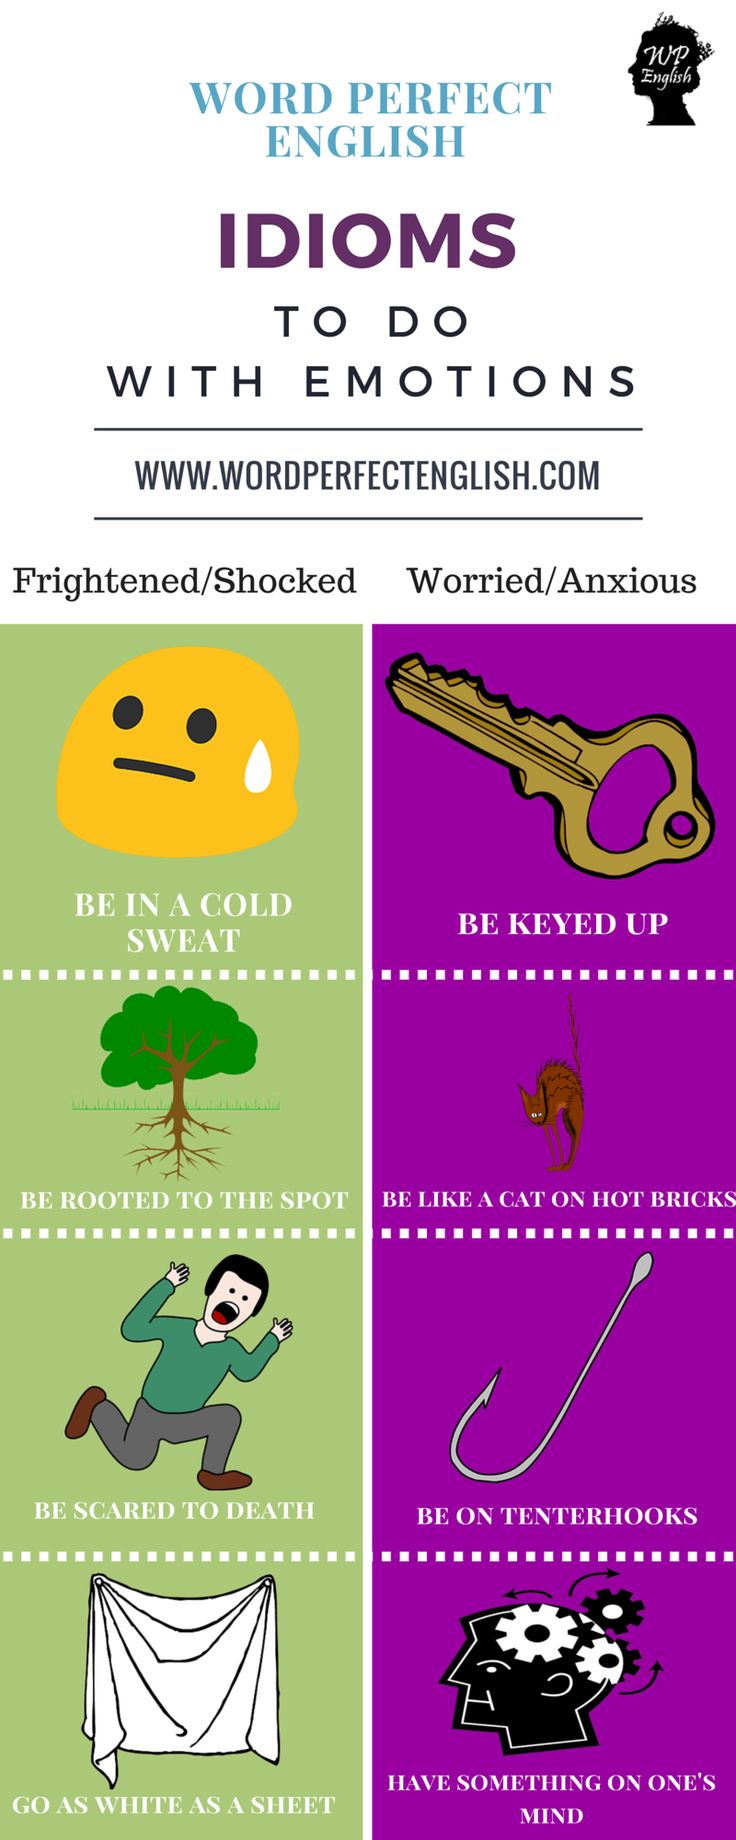 Idioms to do with Emotions 3/4